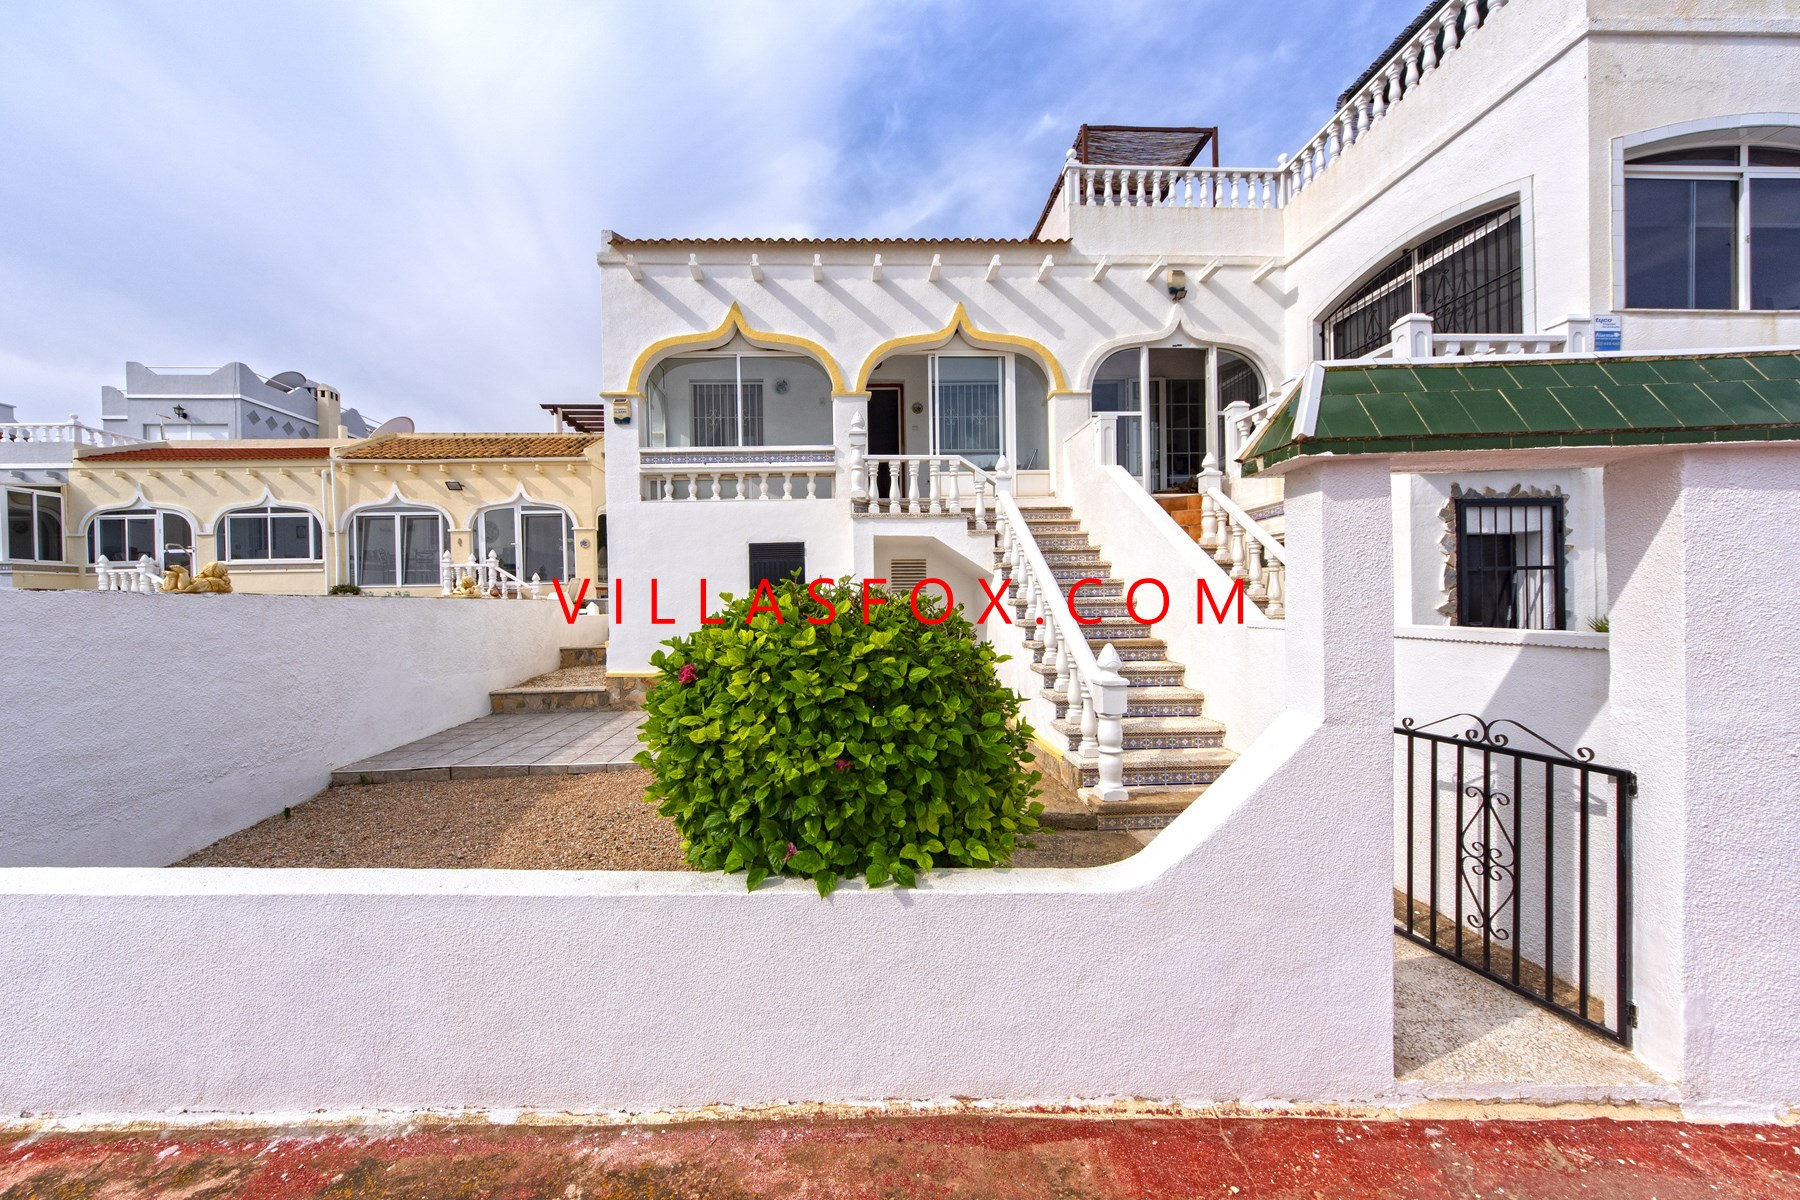 Balcón de la Costa Blanca townhouse with amazing views for sale, San Miguel de Salinas!